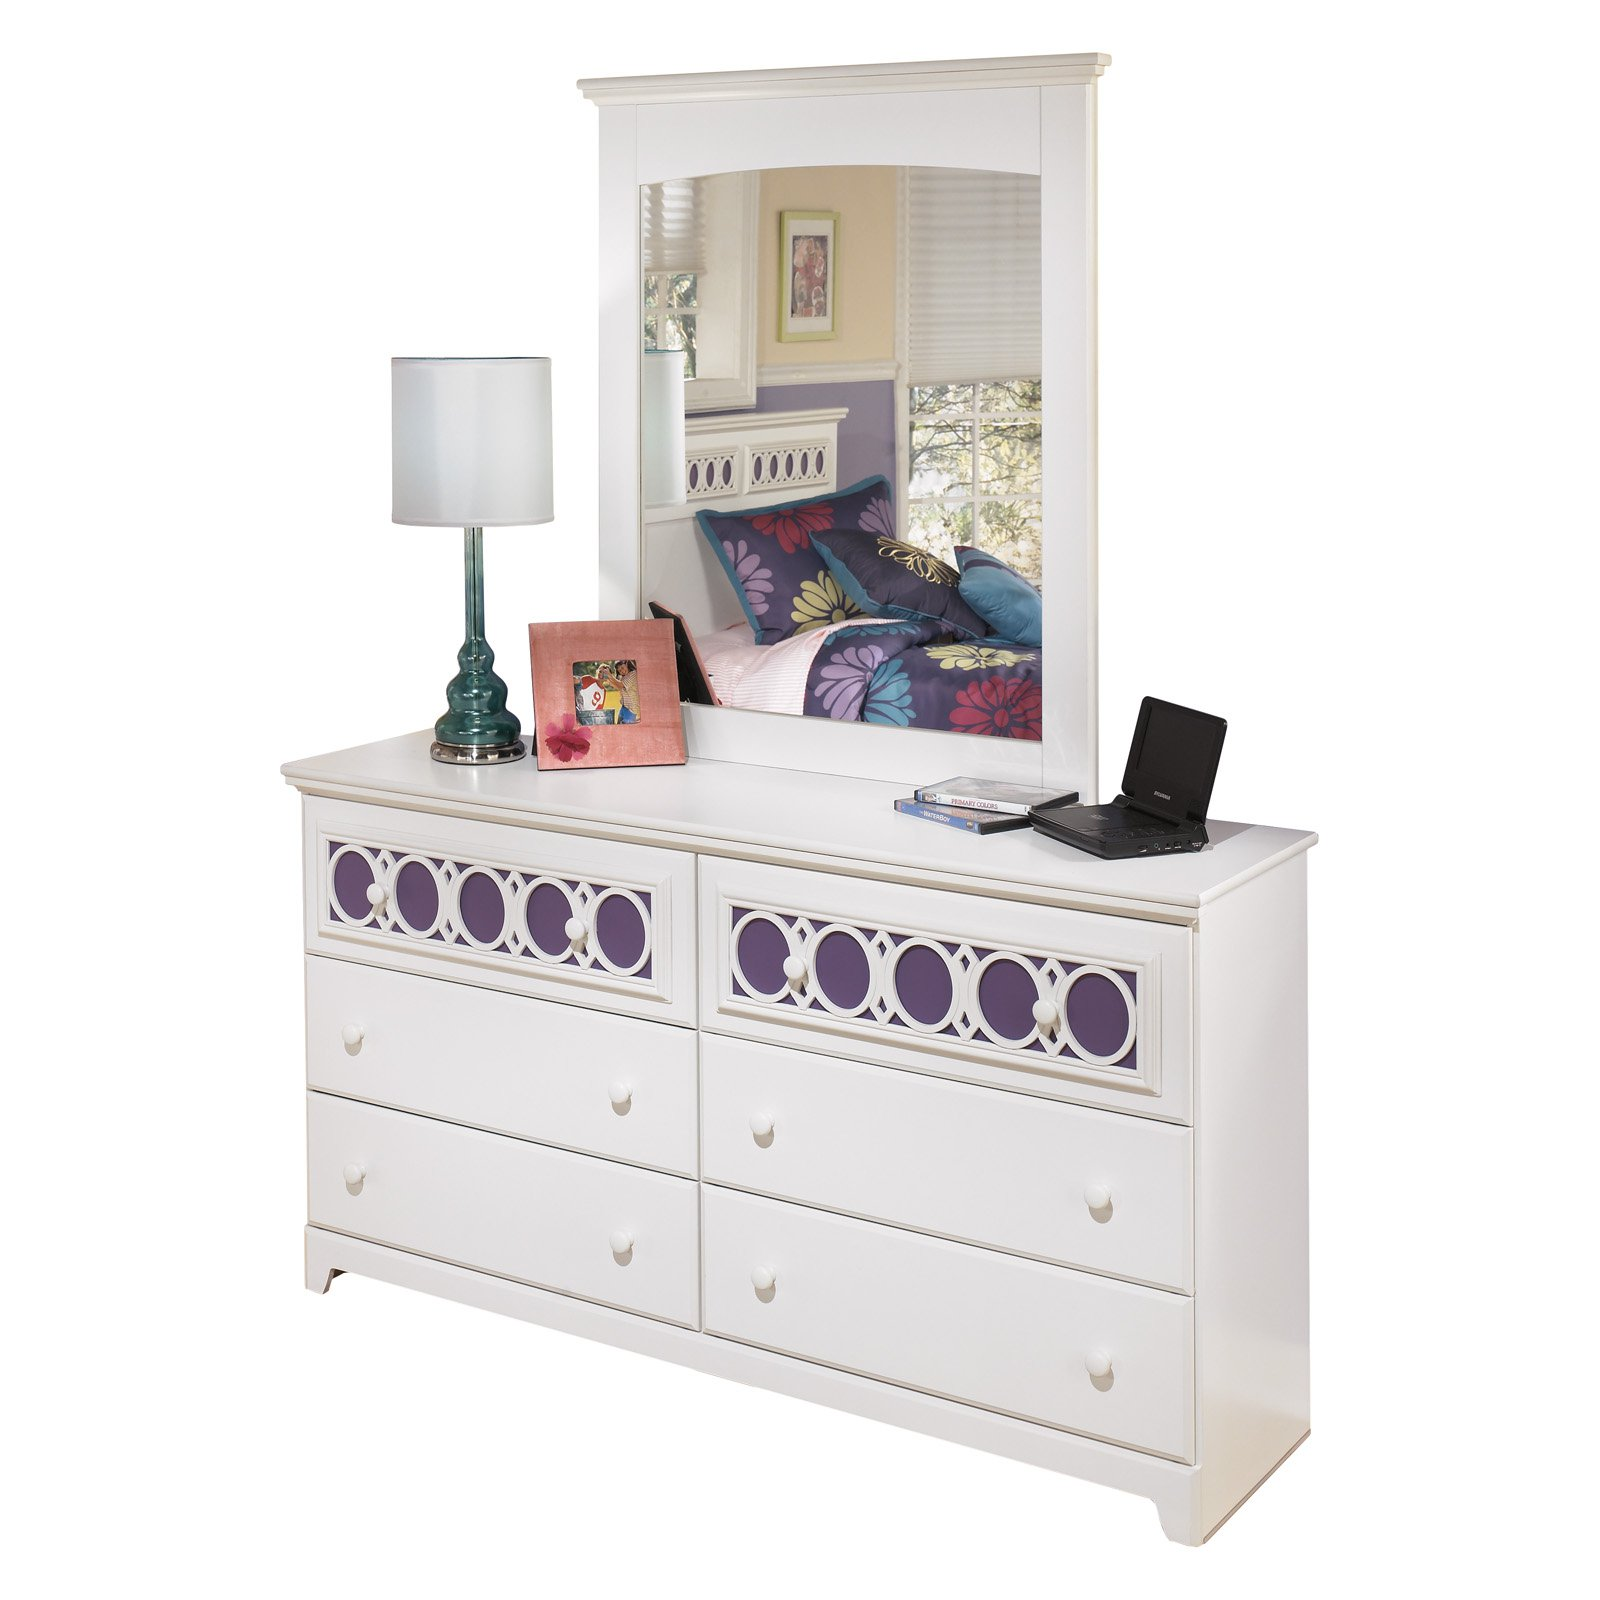 Signature Design By Ashley Zayley 6 Drawer Dresser With